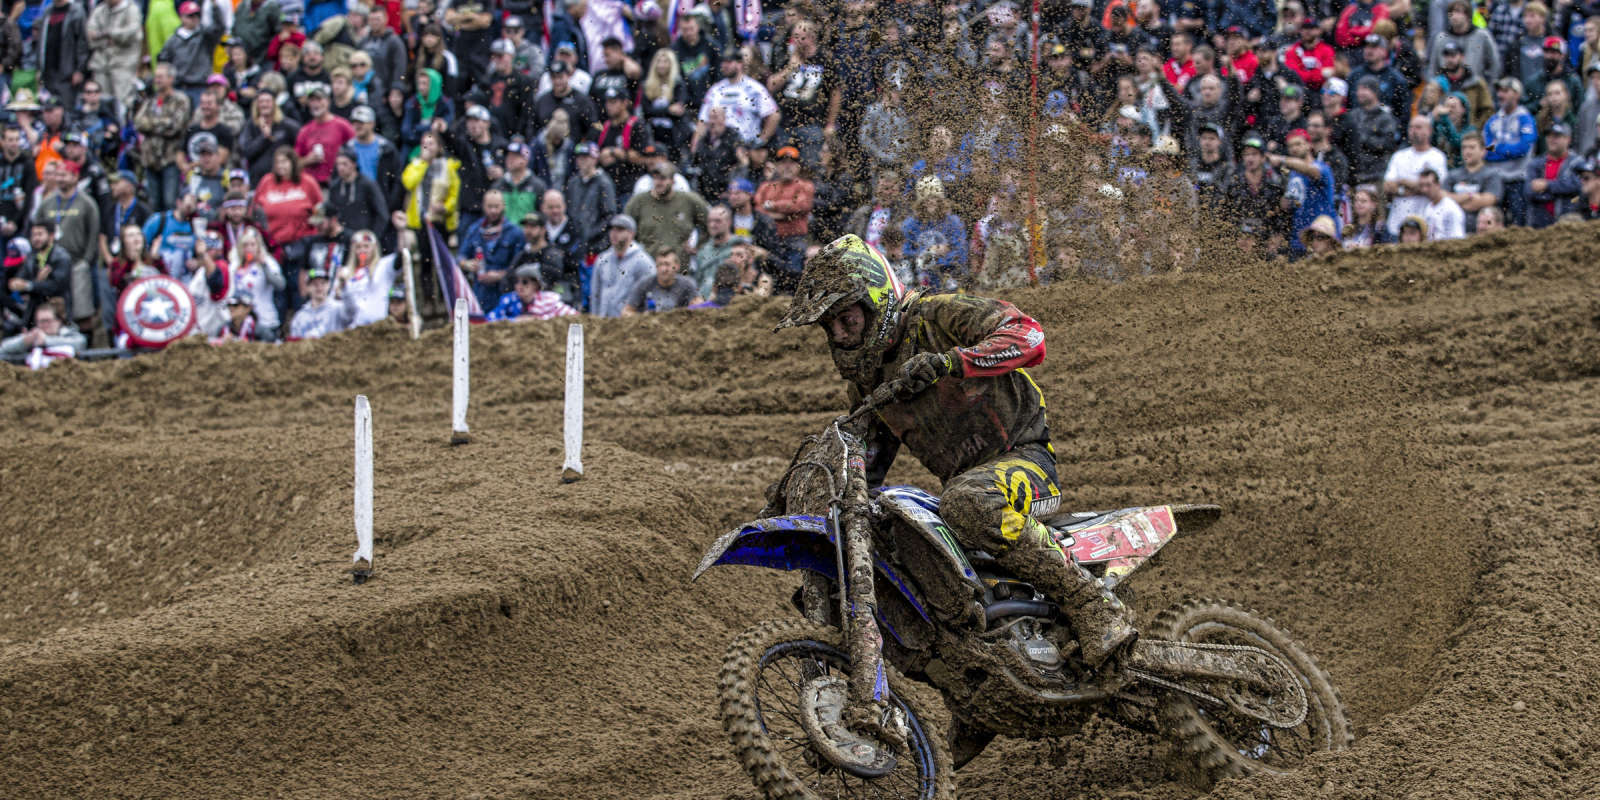 Jago Geerts at the 2018 Motocross of Nations